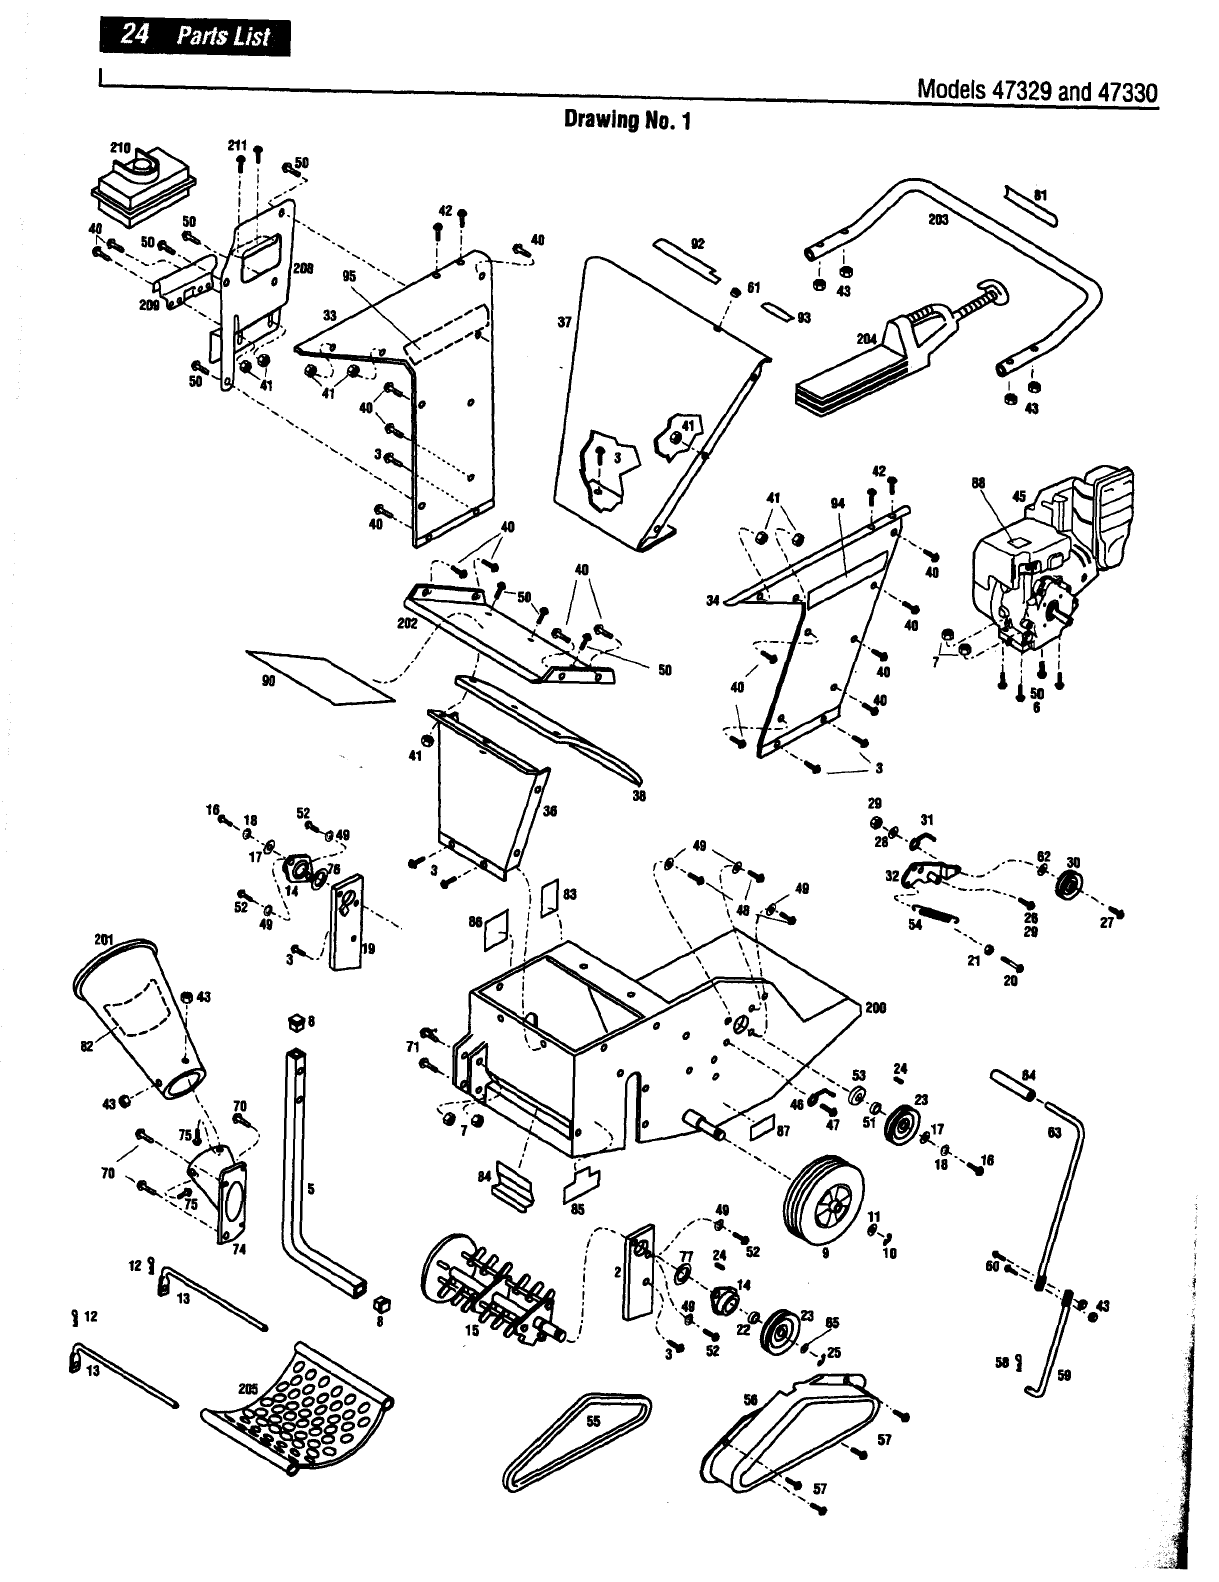 Page 24 of Troy-Bilt Chipper 47330 User Guide